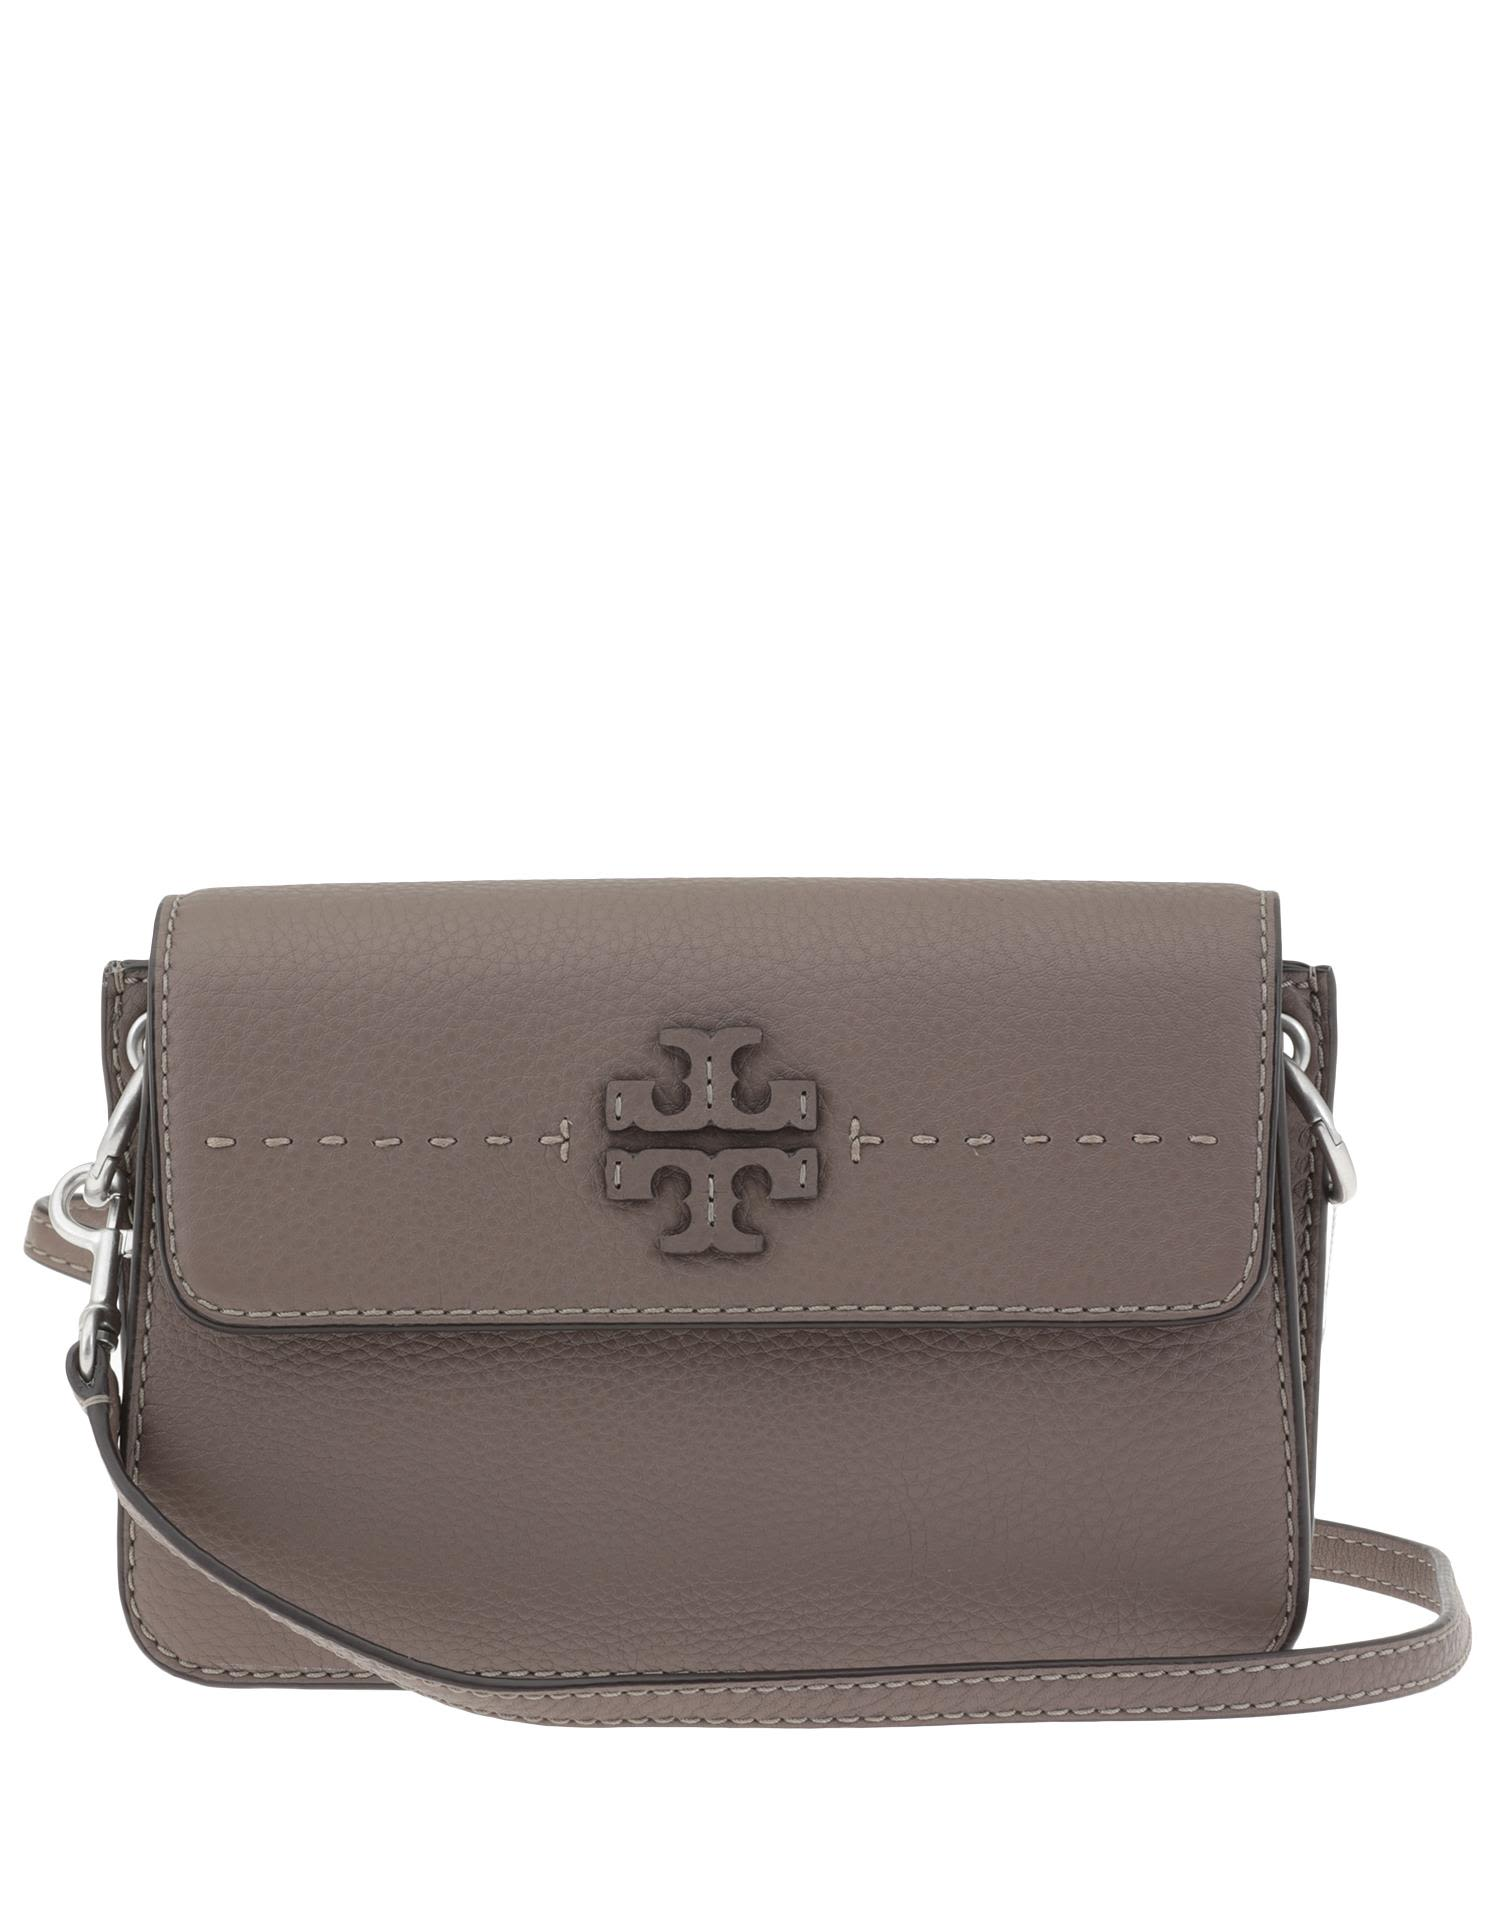 Tory Burch Mc Graw Crossbody Bag